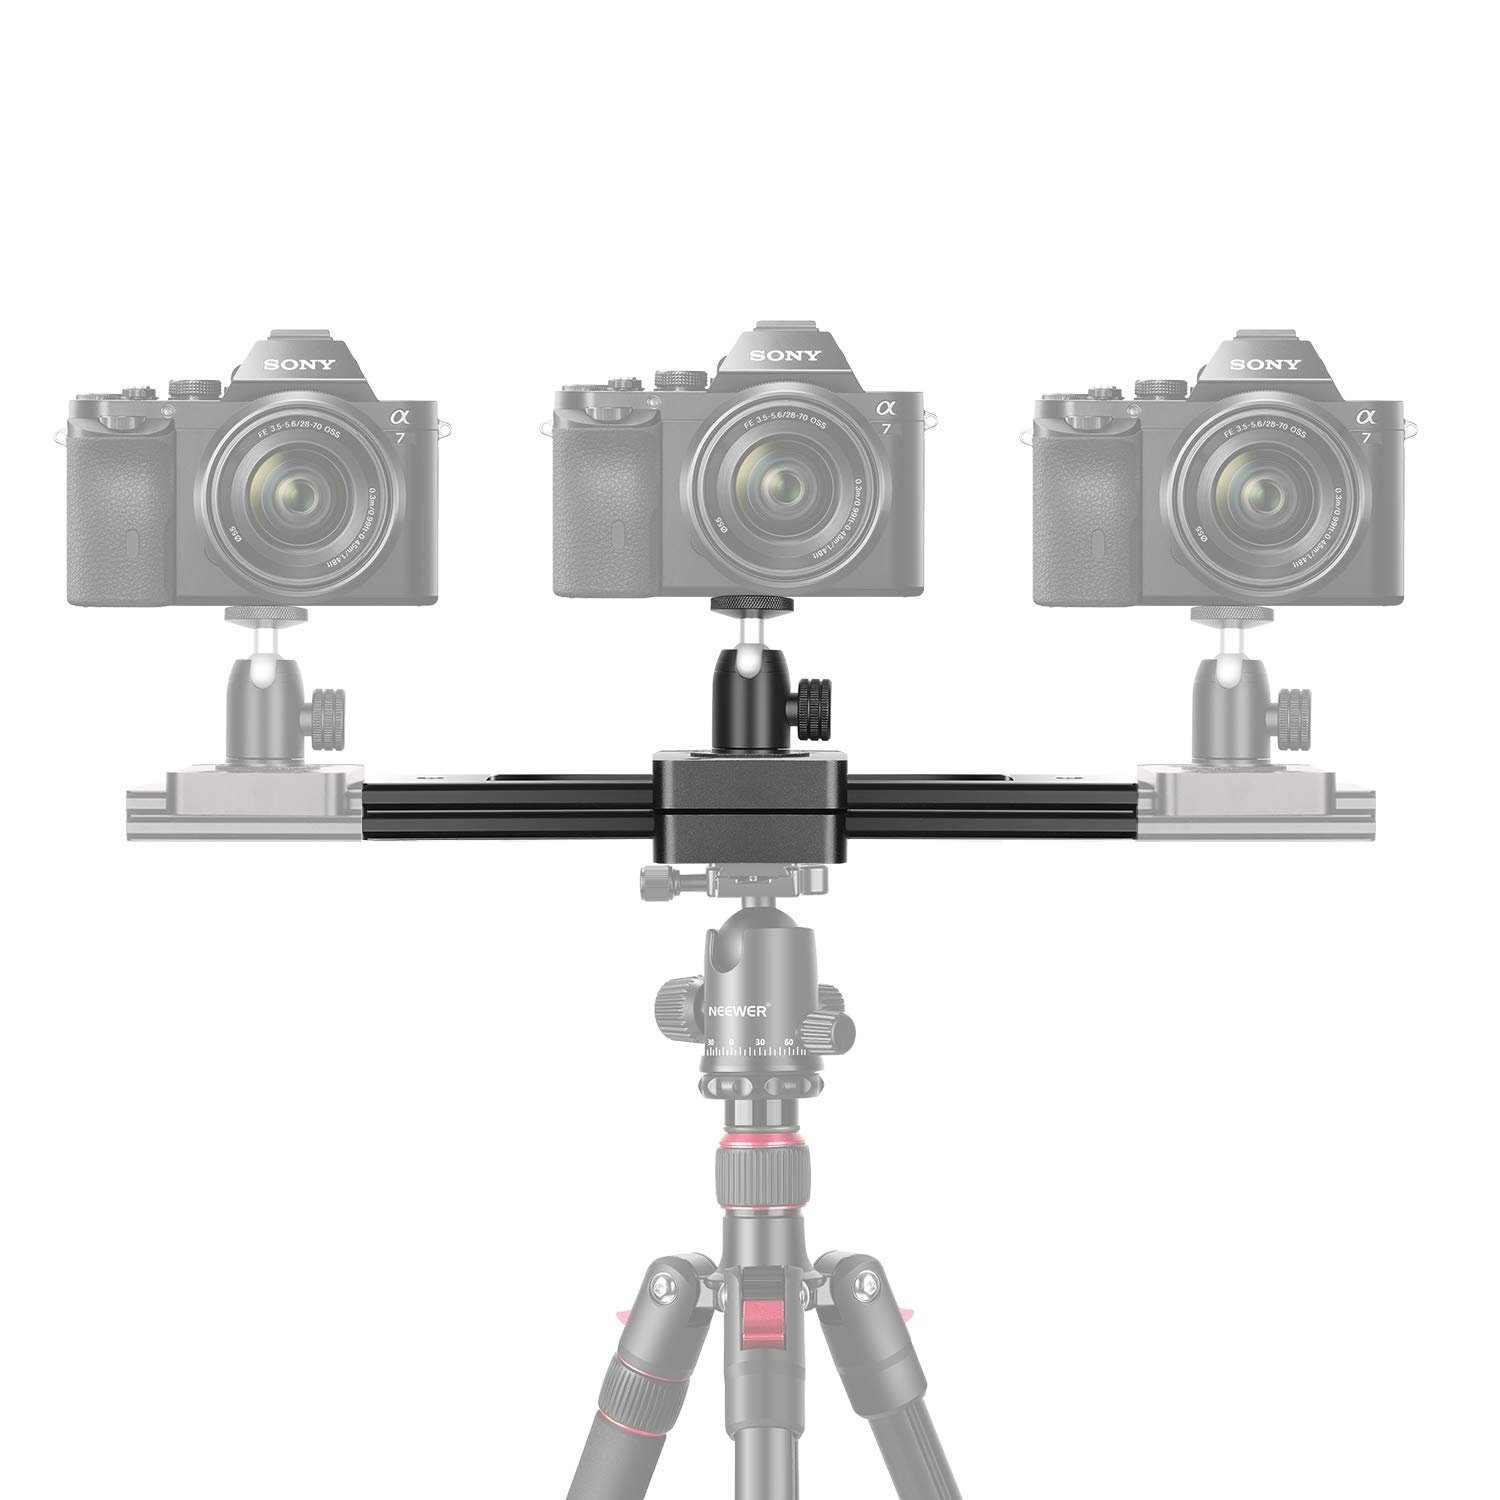 Neewer Portable Mini Camera Video Slider Rail, 9-inch Extendable to 15-inch 2-Way Retractable Damping Dolly Track Rail Slider for Small Camera, Micro-SLR Camera and Smartphones, Max. Load 6.6 pounds by Neewer